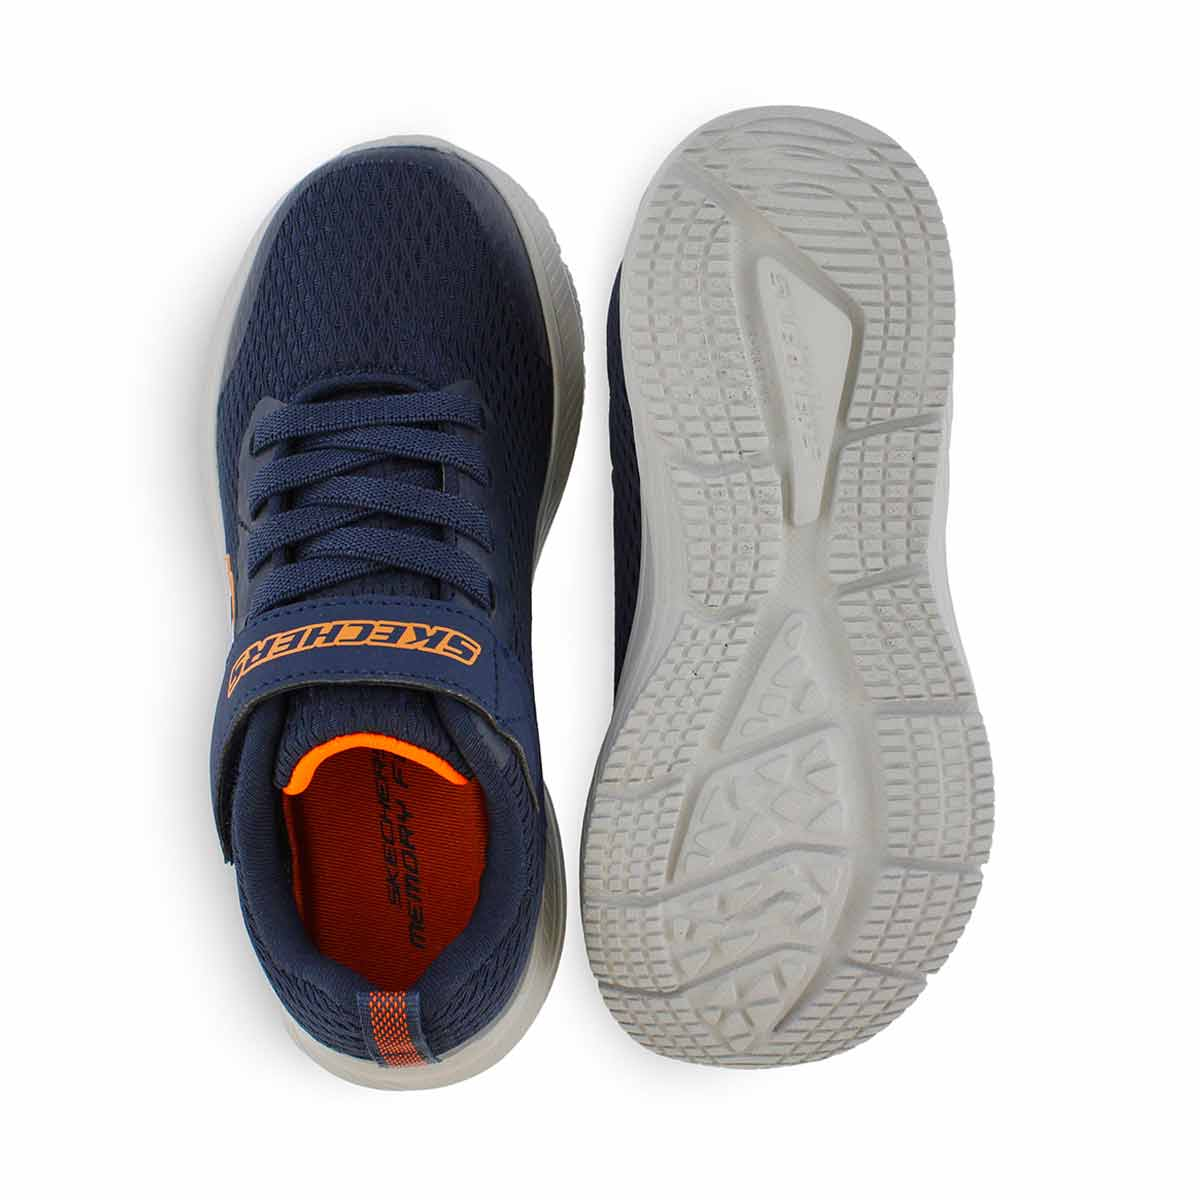 Bys Dyna-Air navy sneaker